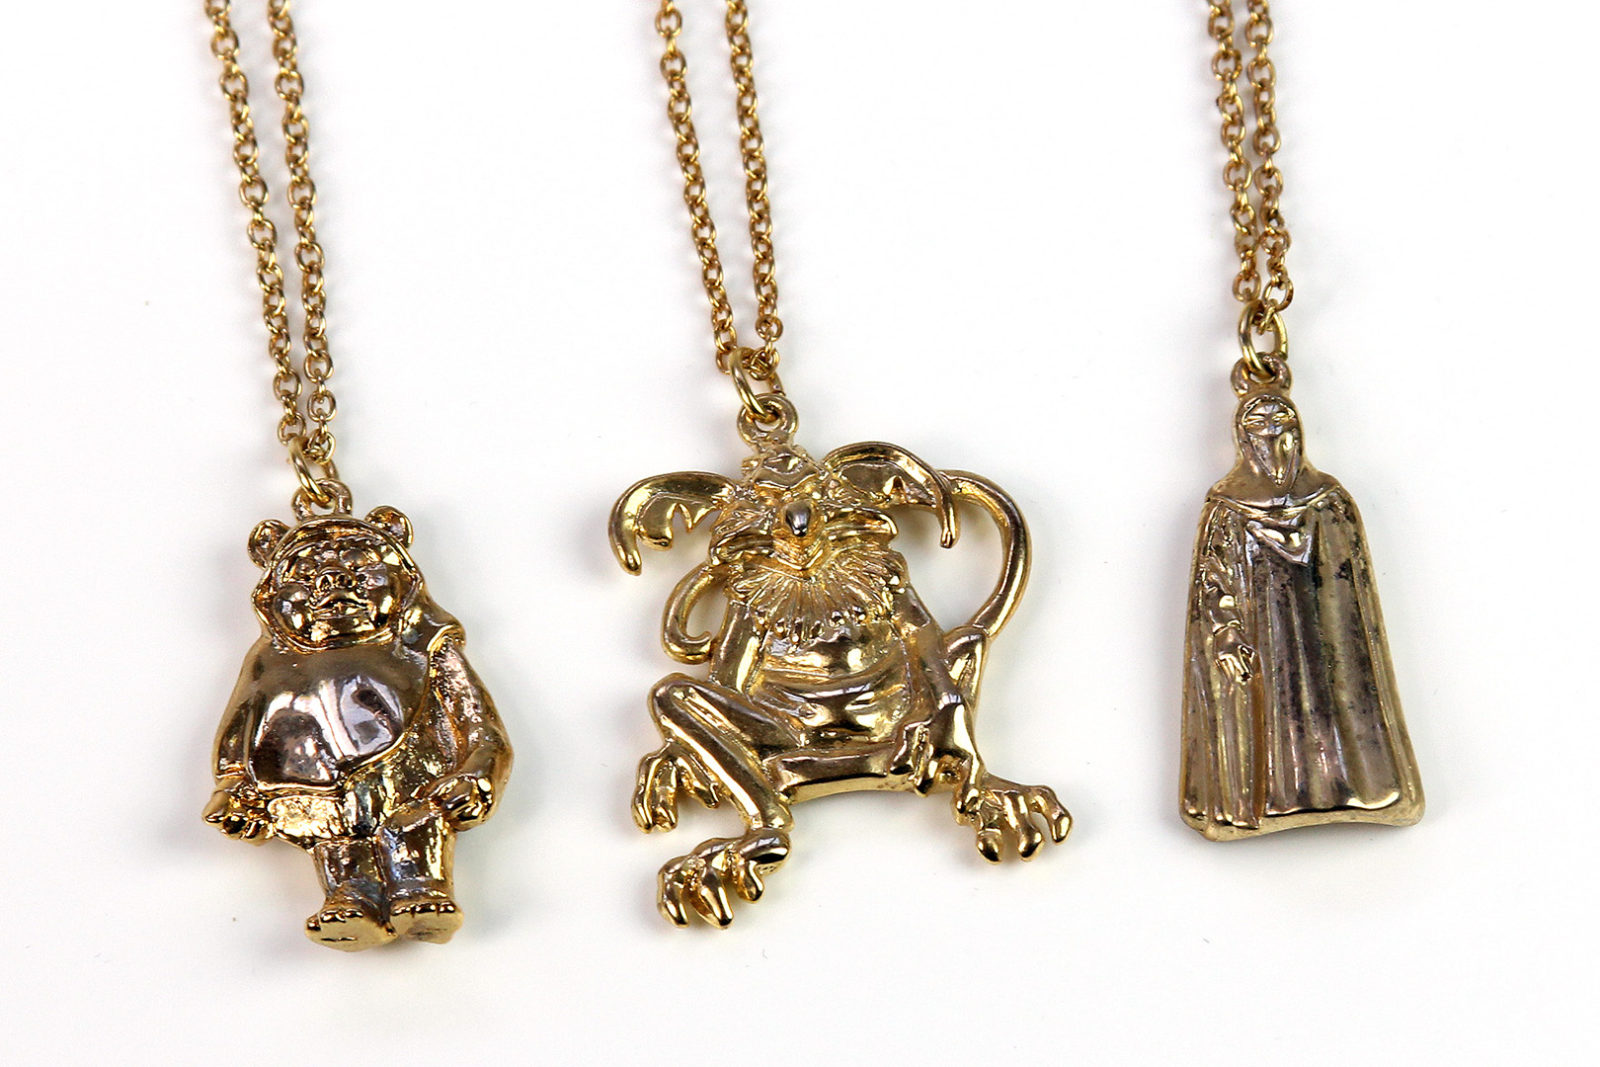 Character necklaces by Adam Joseph